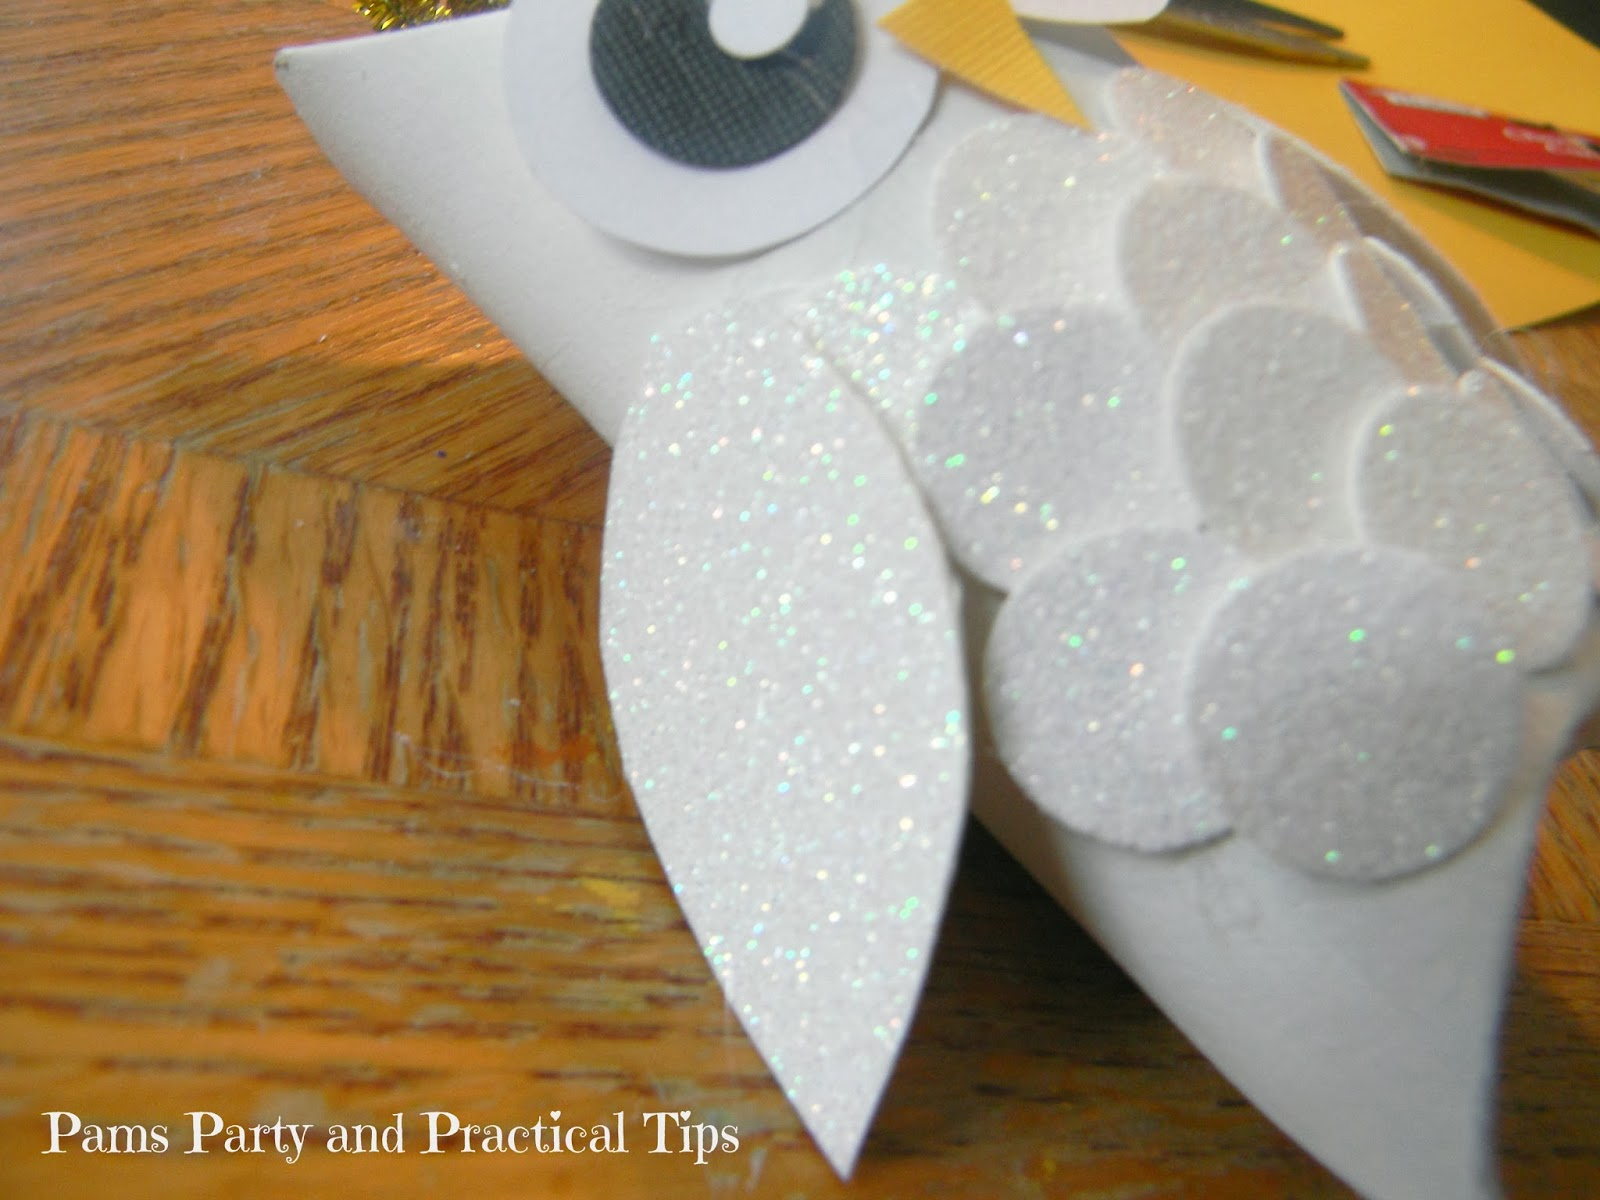 Pams party practical tips snow owl ornaments i bought a 12 x 12 piece of white glitter cardstock at the craft store for about a dollar i made three owl ornaments today and i still have a ton of jeuxipadfo Image collections